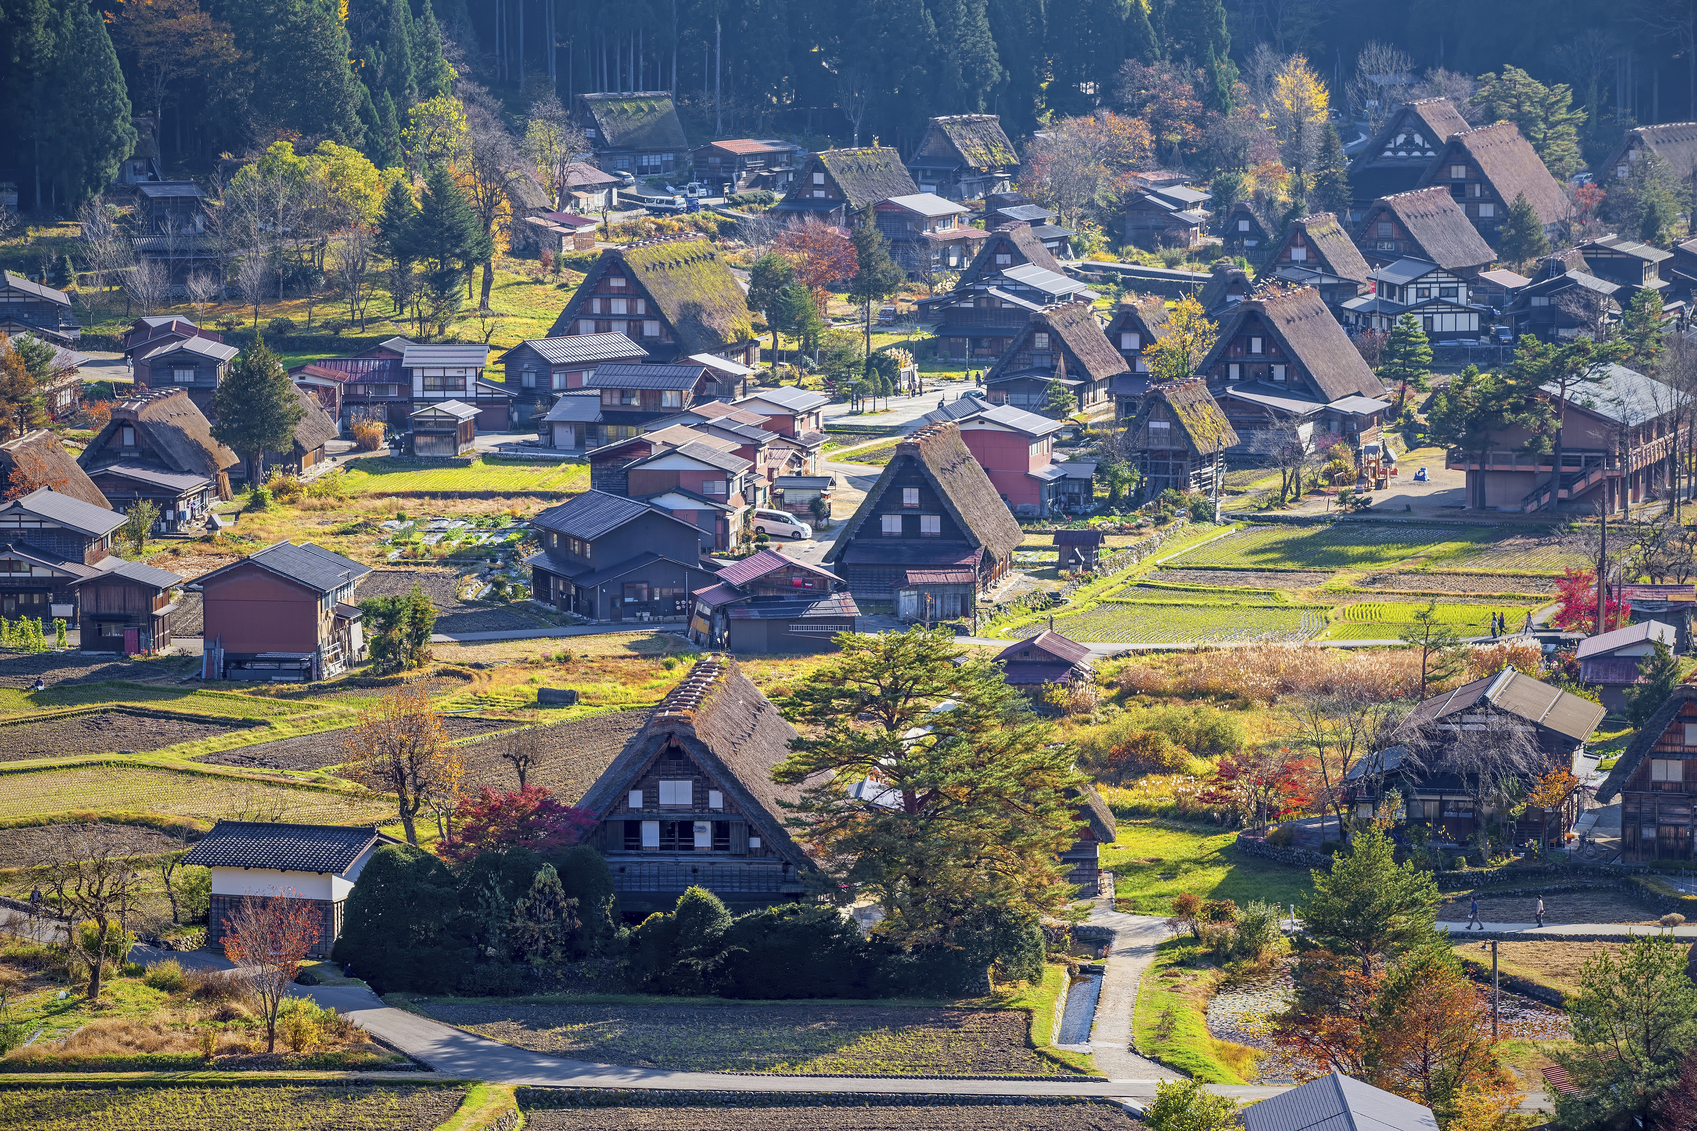 Officials and businesses are trying to get inbound tourists to spend more time and money on regional tourism destinations, including the village of Shirakawa, Gifu Prefecture, famed for traditional thatched-roof homes. | ISTOCK